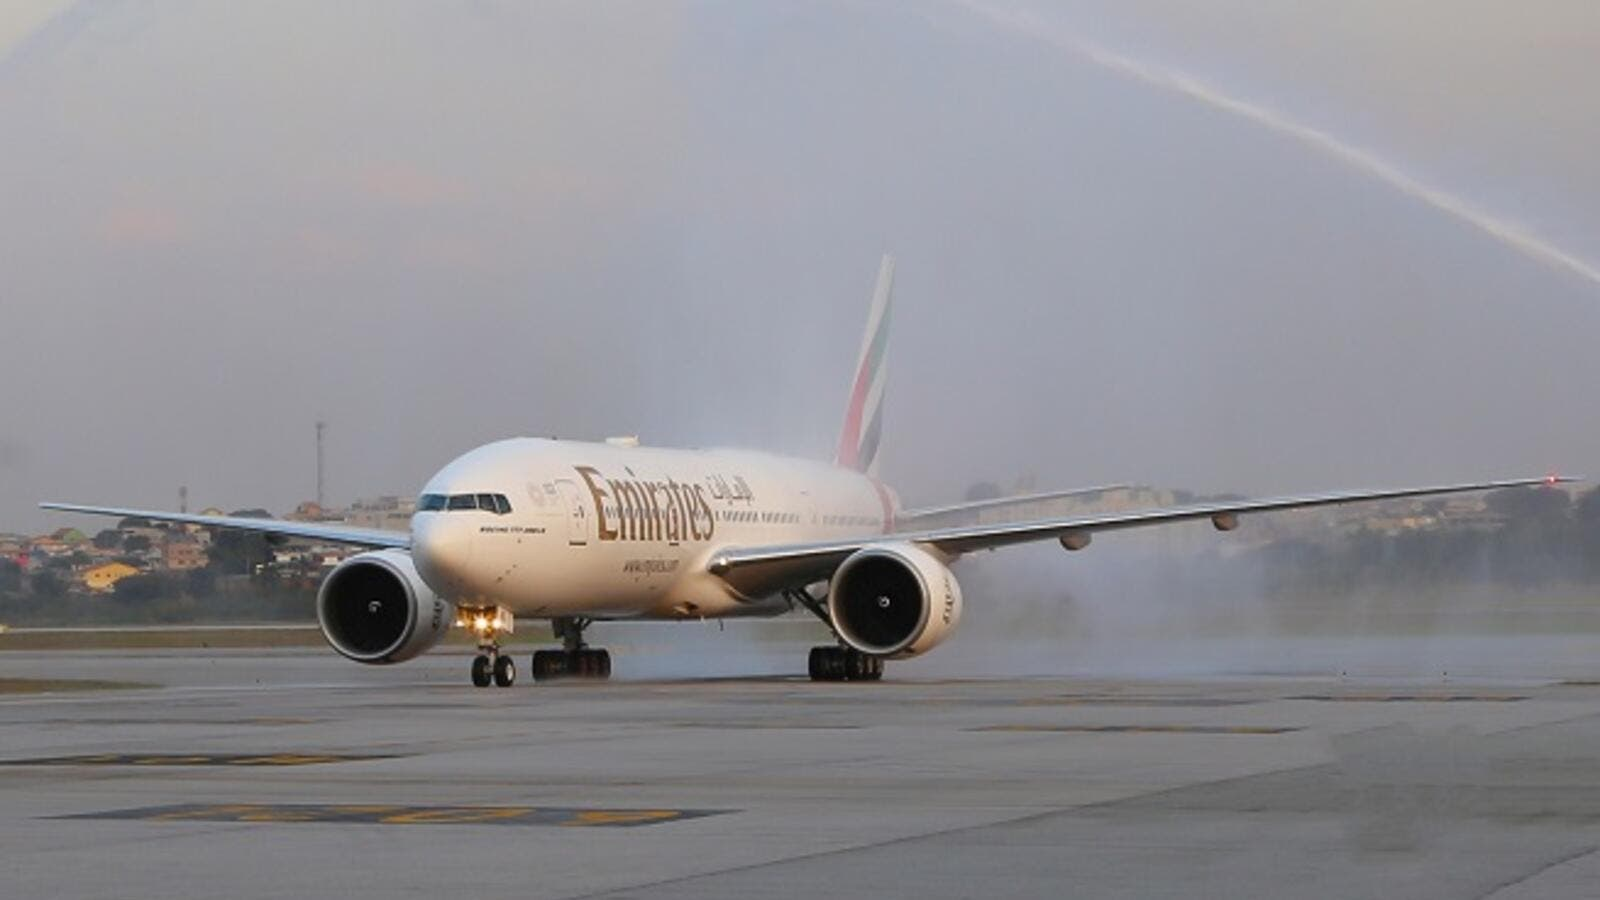 Travellers can also book with Emirates Holidays and enjoy a five-star holiday experience for an additional spend starting at Dh275 per person, exclusive of the airfare. (File/Photo)